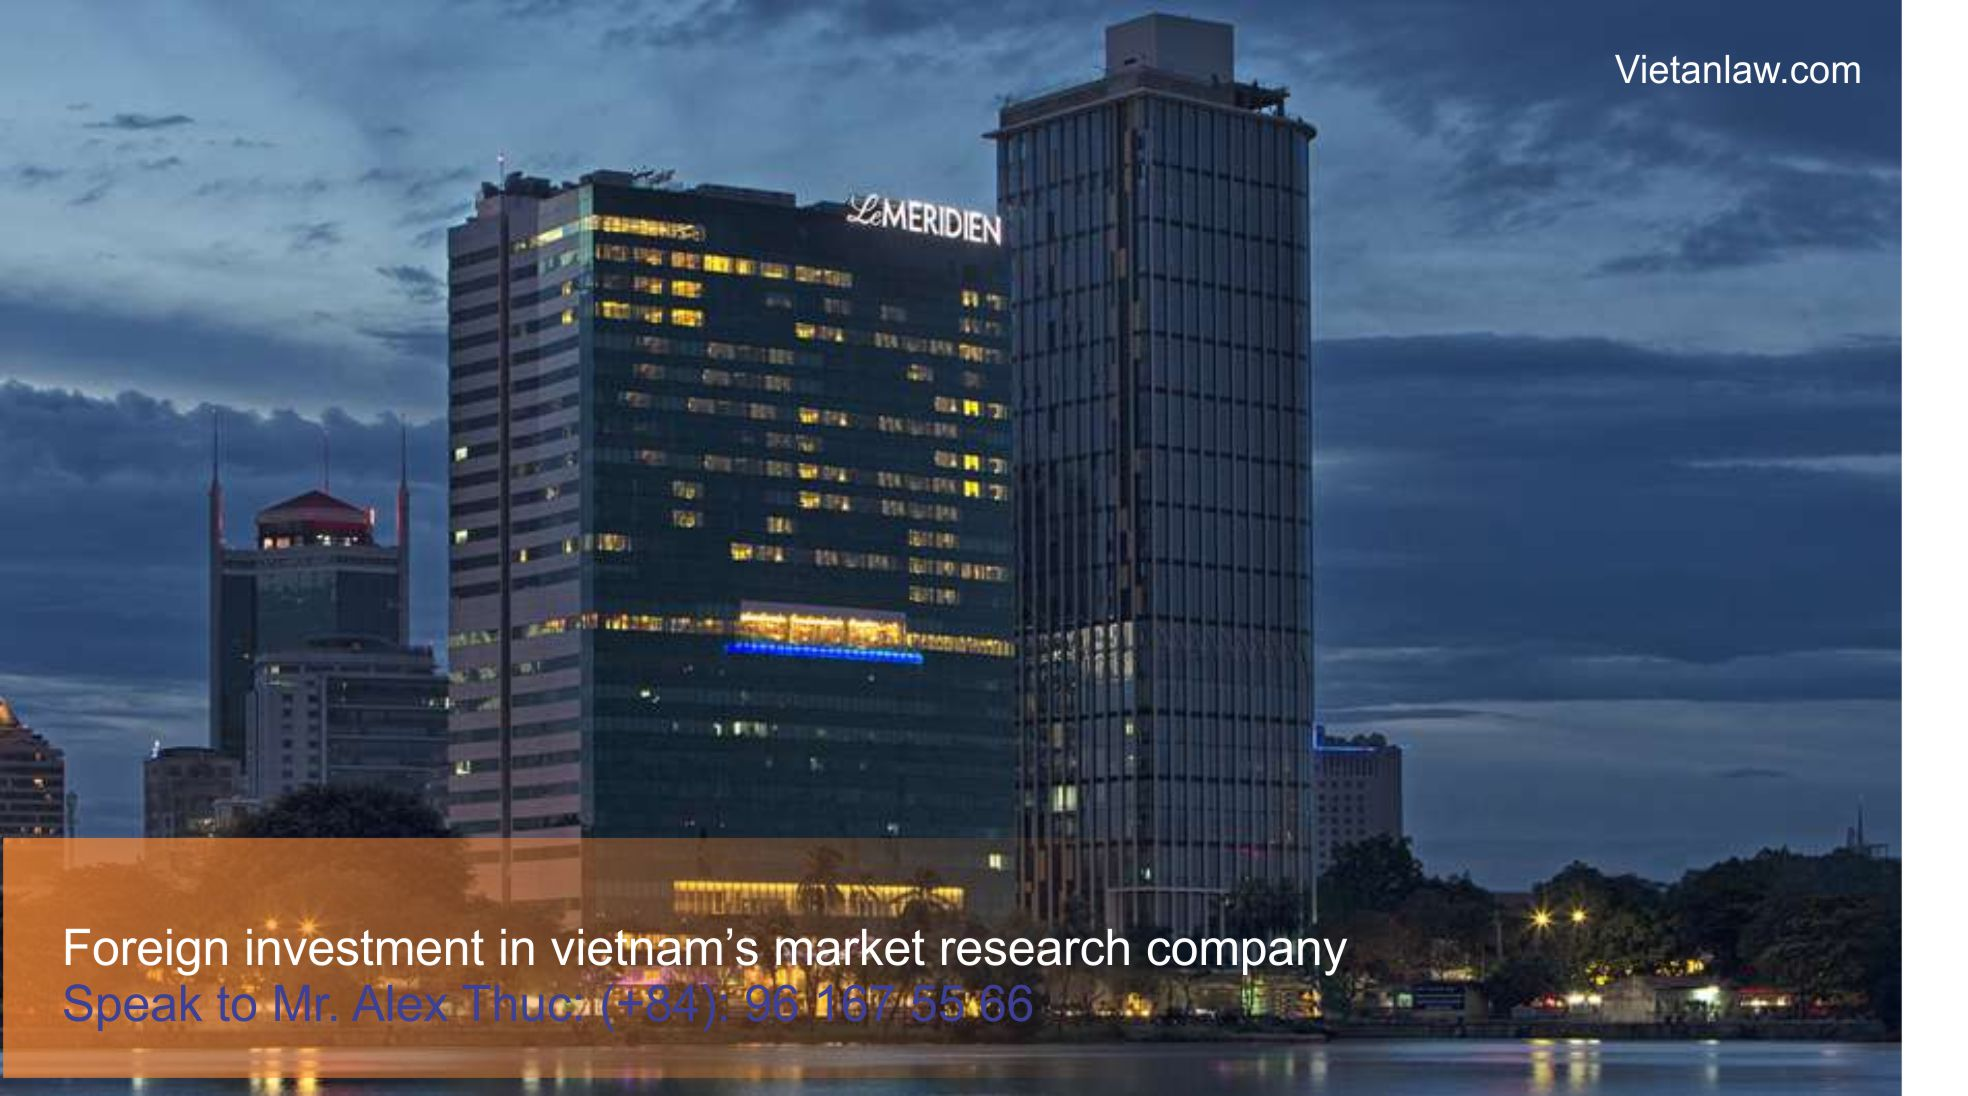 Foreign investment in vietnam's market research company